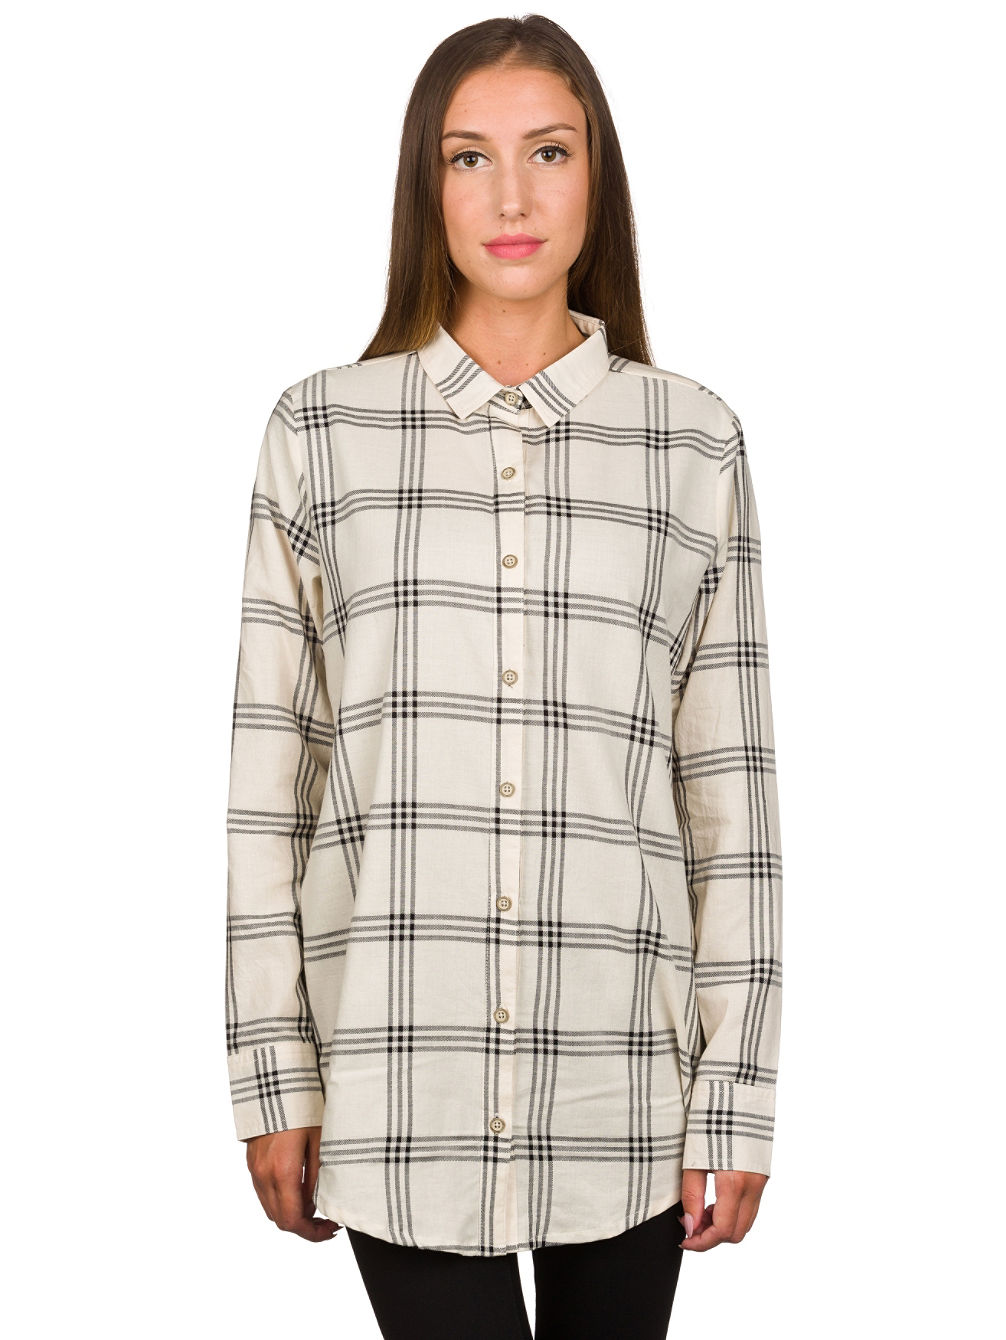 Macker Plaid Hemd